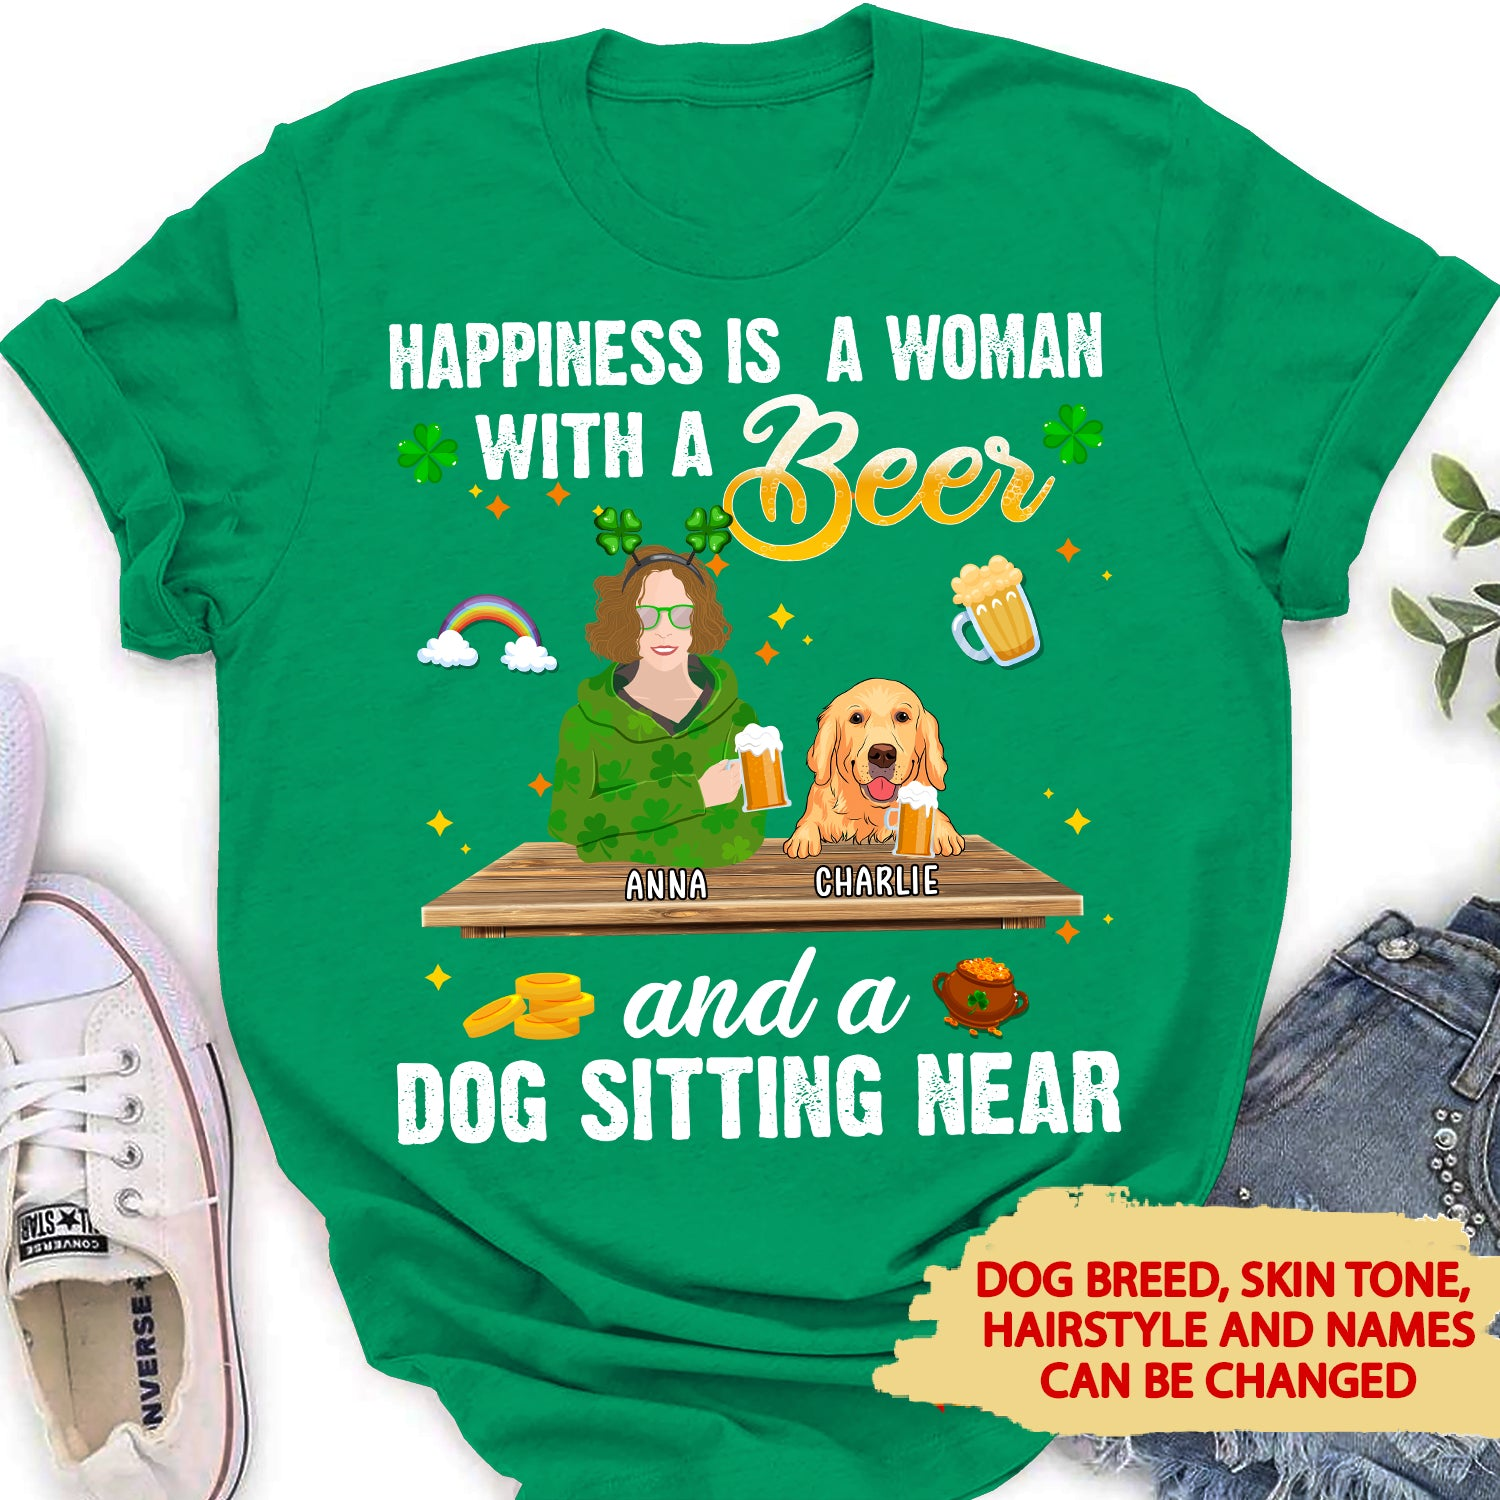 Dog Sitting Near - Personalized Custom Women's T-shirt